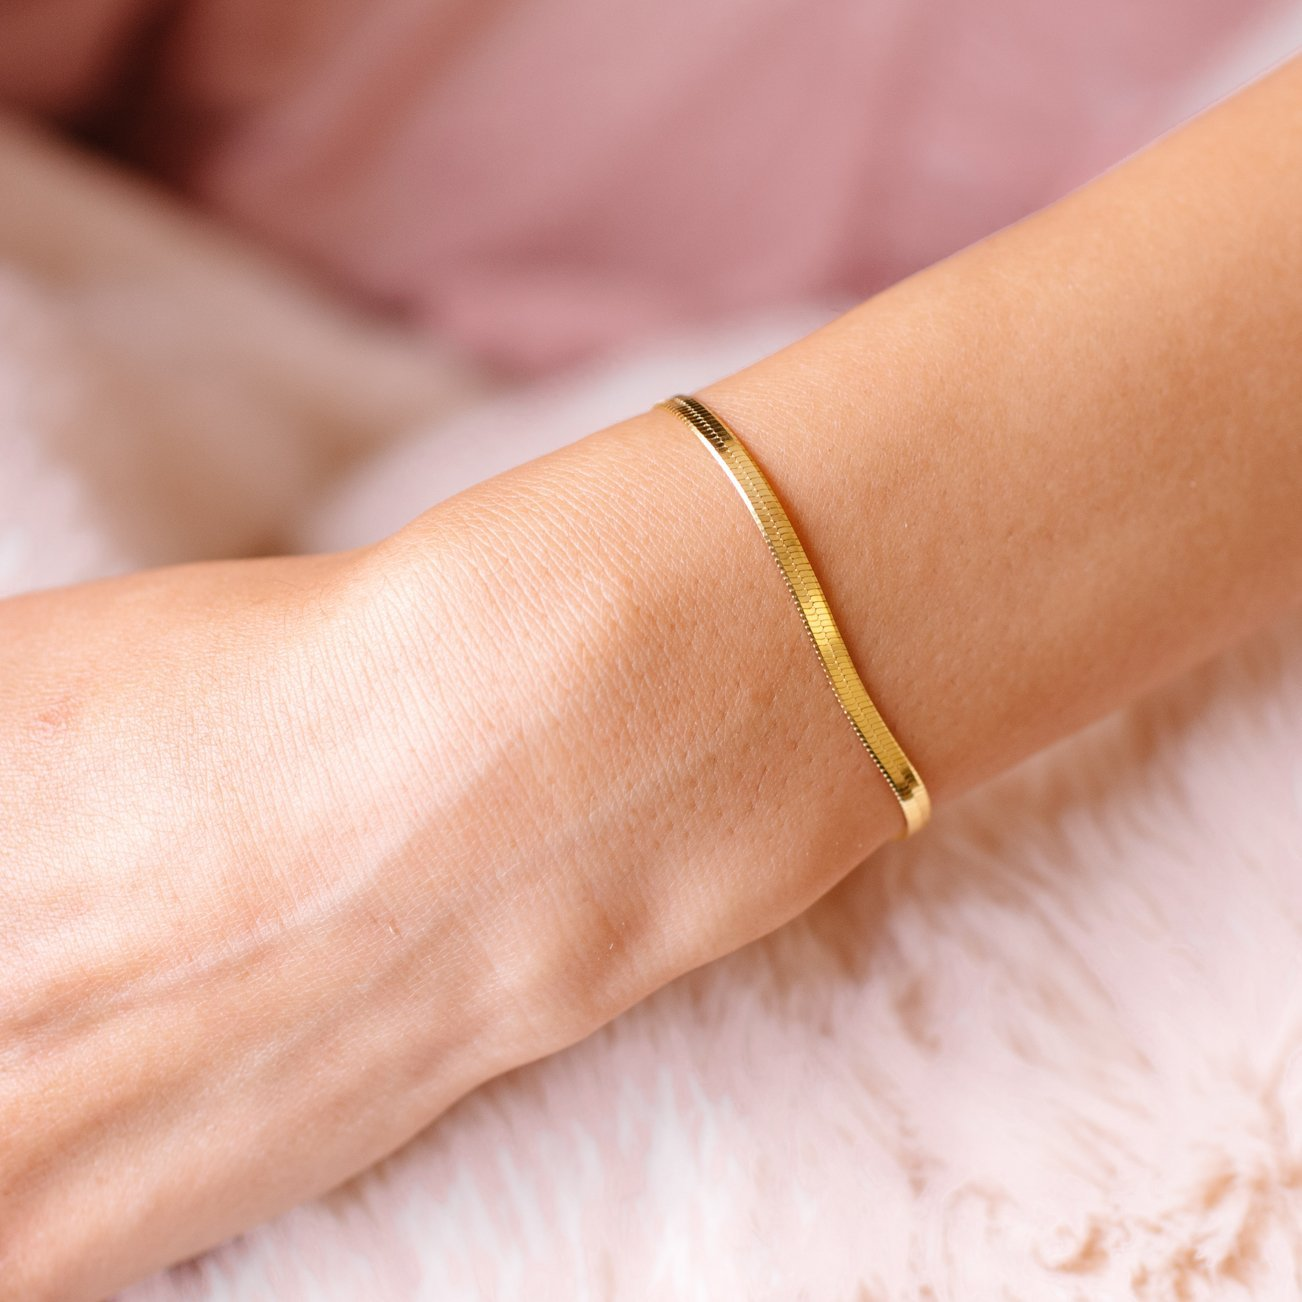 CHARMING HERRINGBONE BRACELET - GOLD - SO PRETTY CARA COTTER